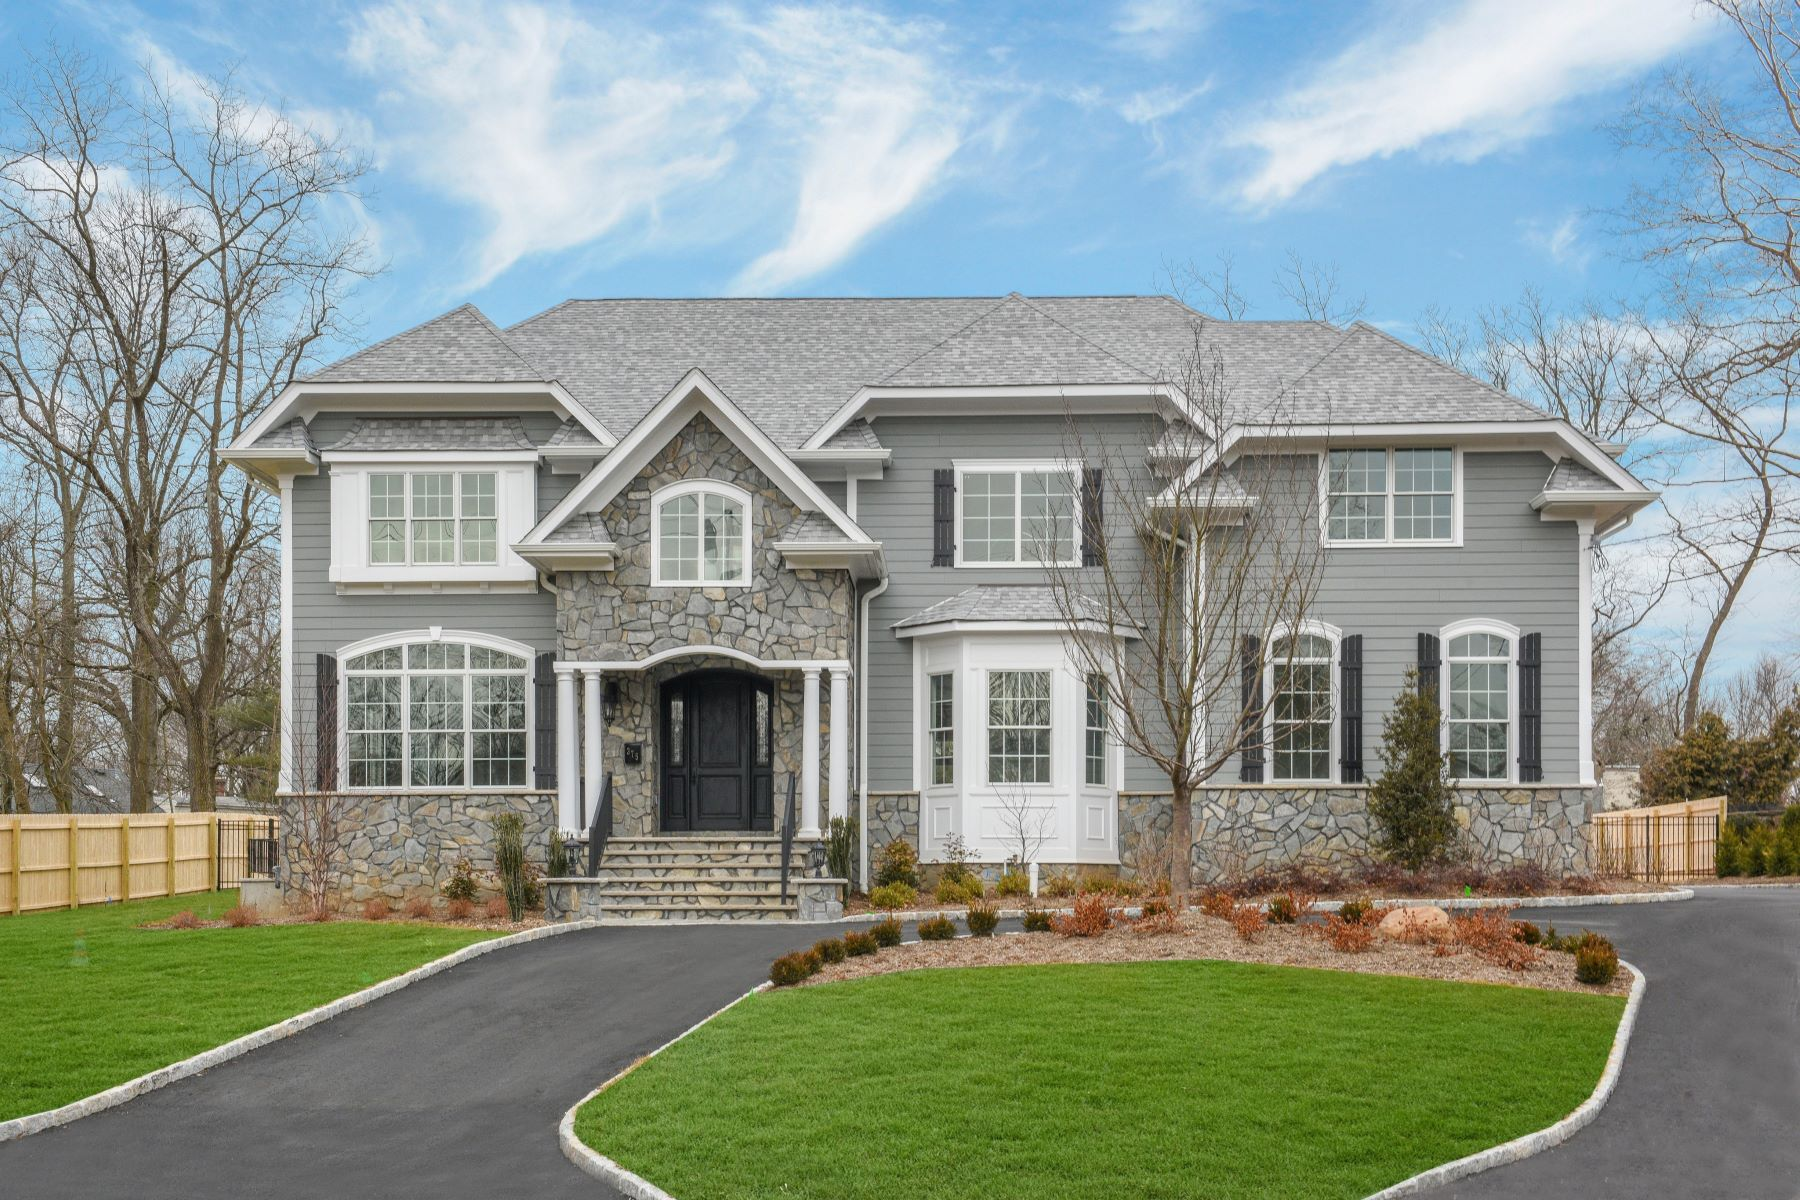 Single Family Home for Sale at Fabulous New Construction! 375 White Oak Ridge Road, Short Hills, New Jersey 07078 United States